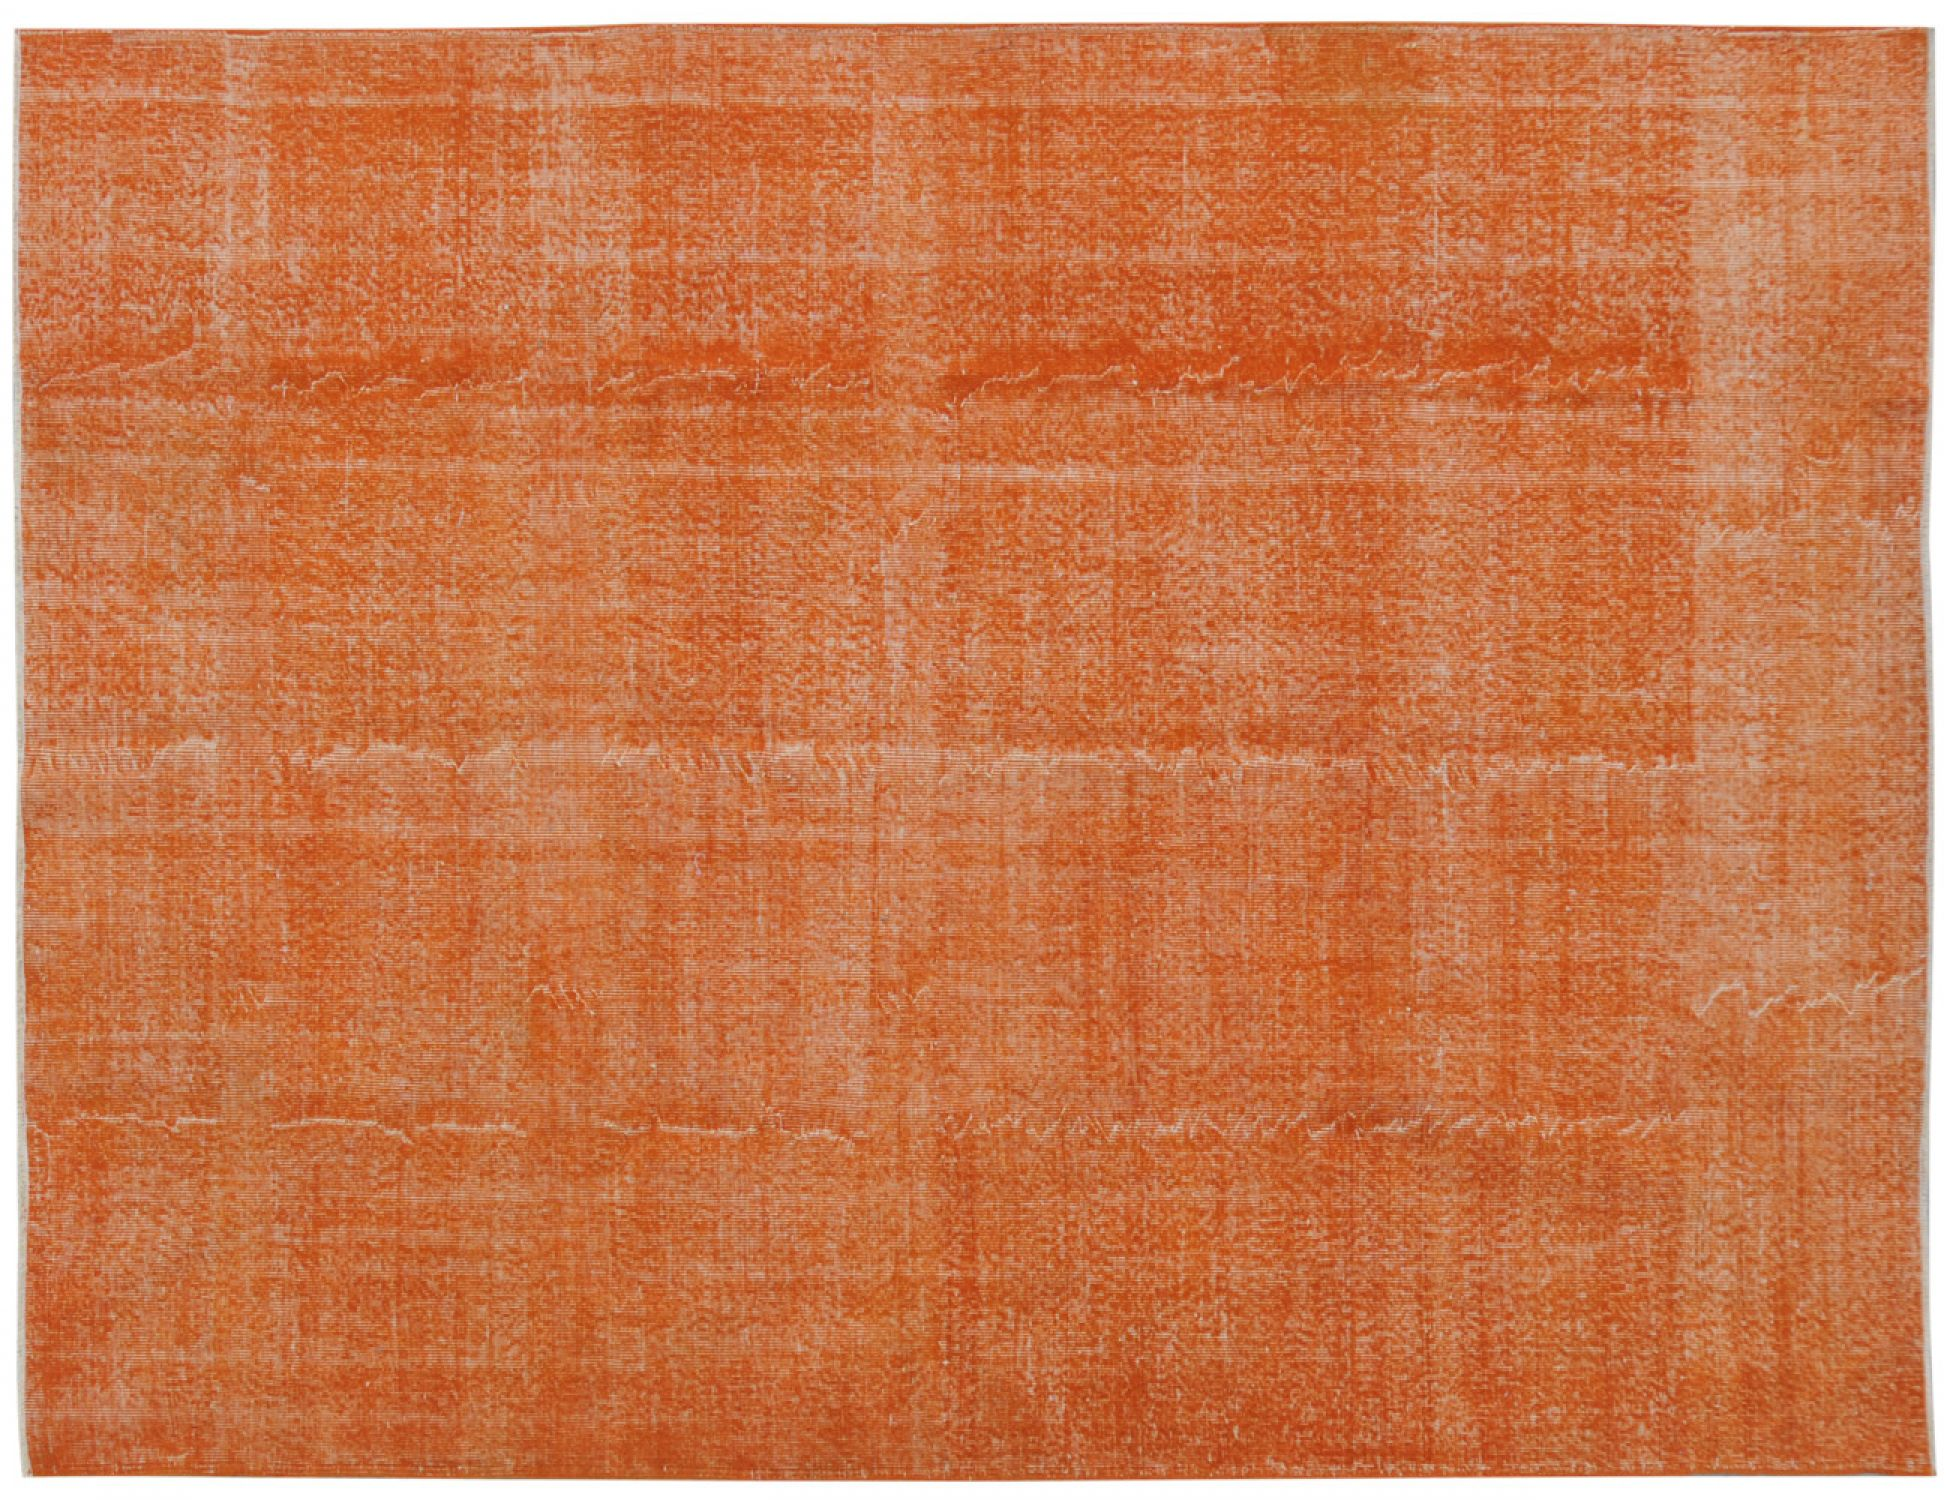 Vintage Carpet  orange <br/>302 x 210 cm